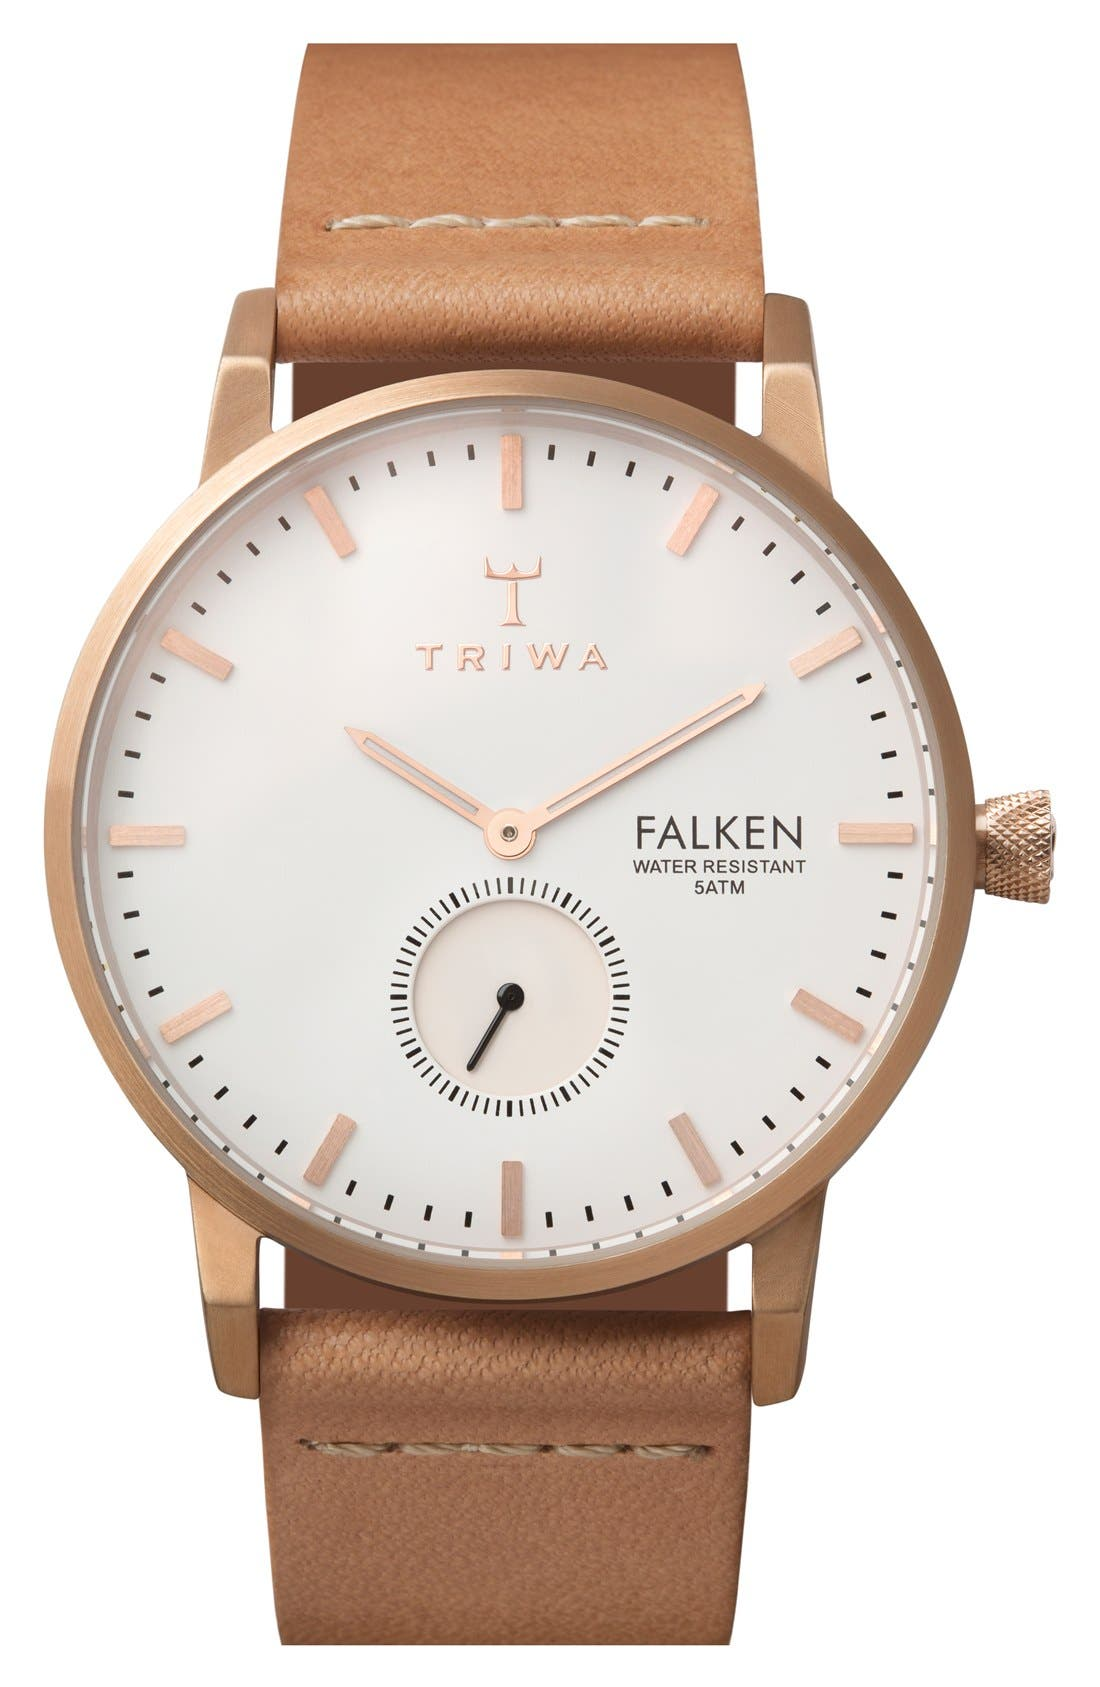 Main Image - TRIWA Falken Organic Leather Strap Watch, 38mm